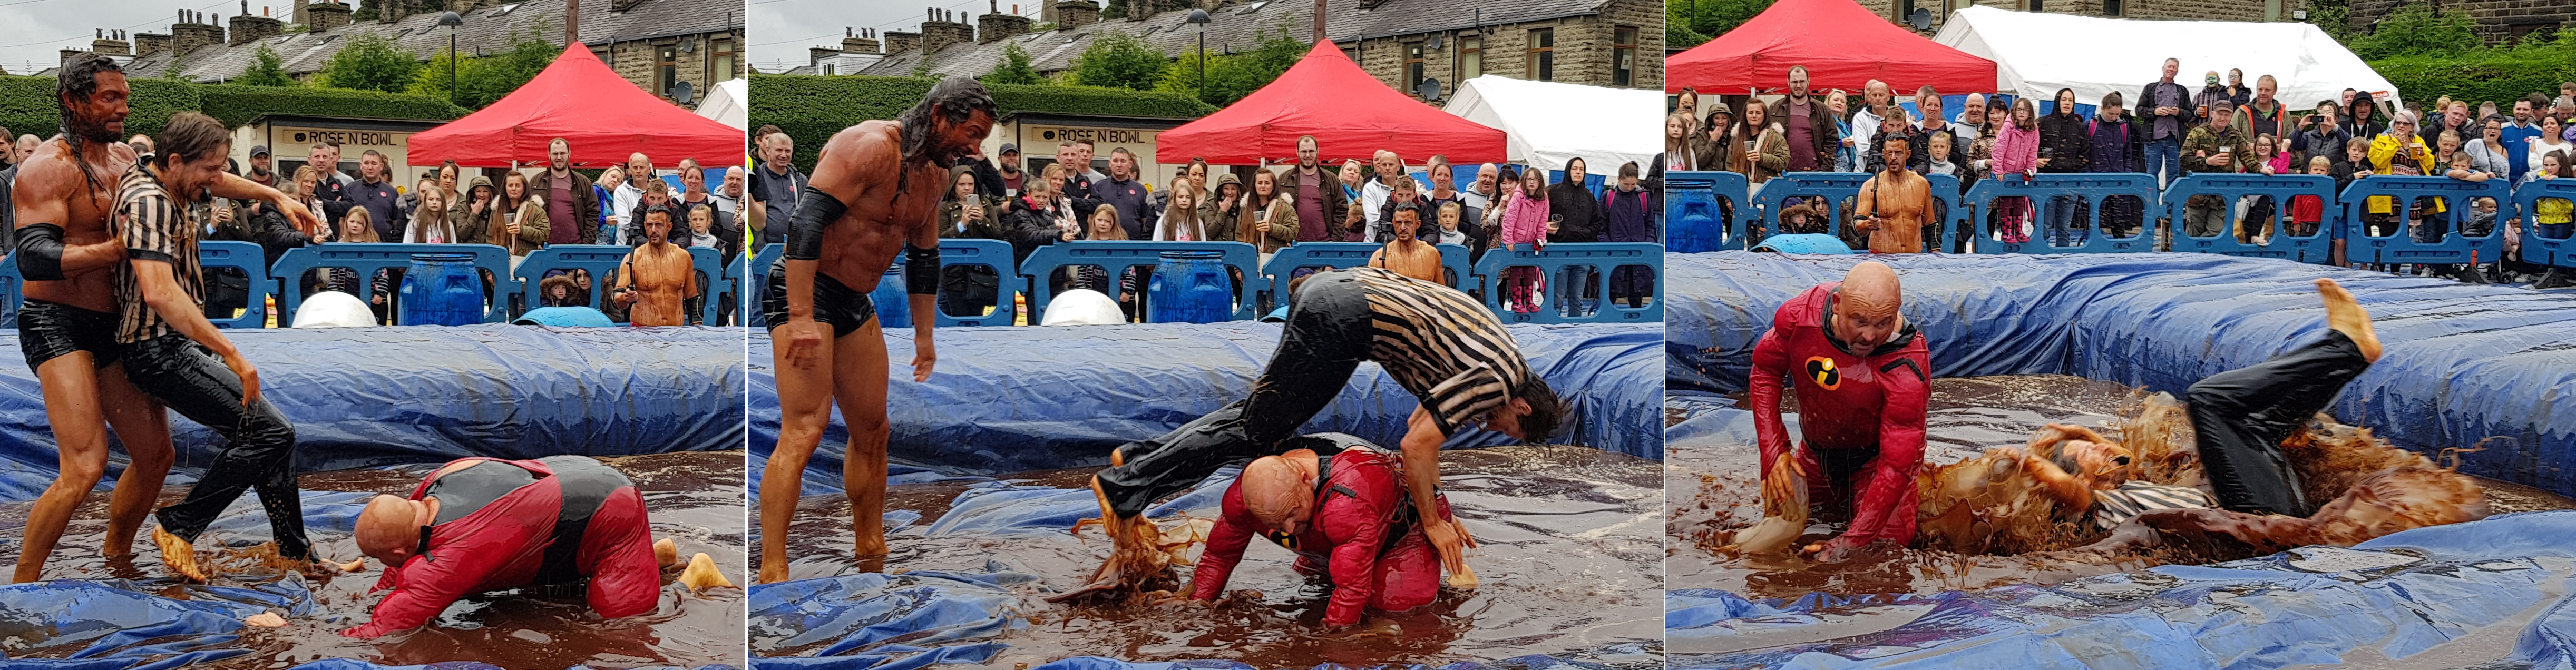 Gravy Wrestling 2018 - Mud man push ref